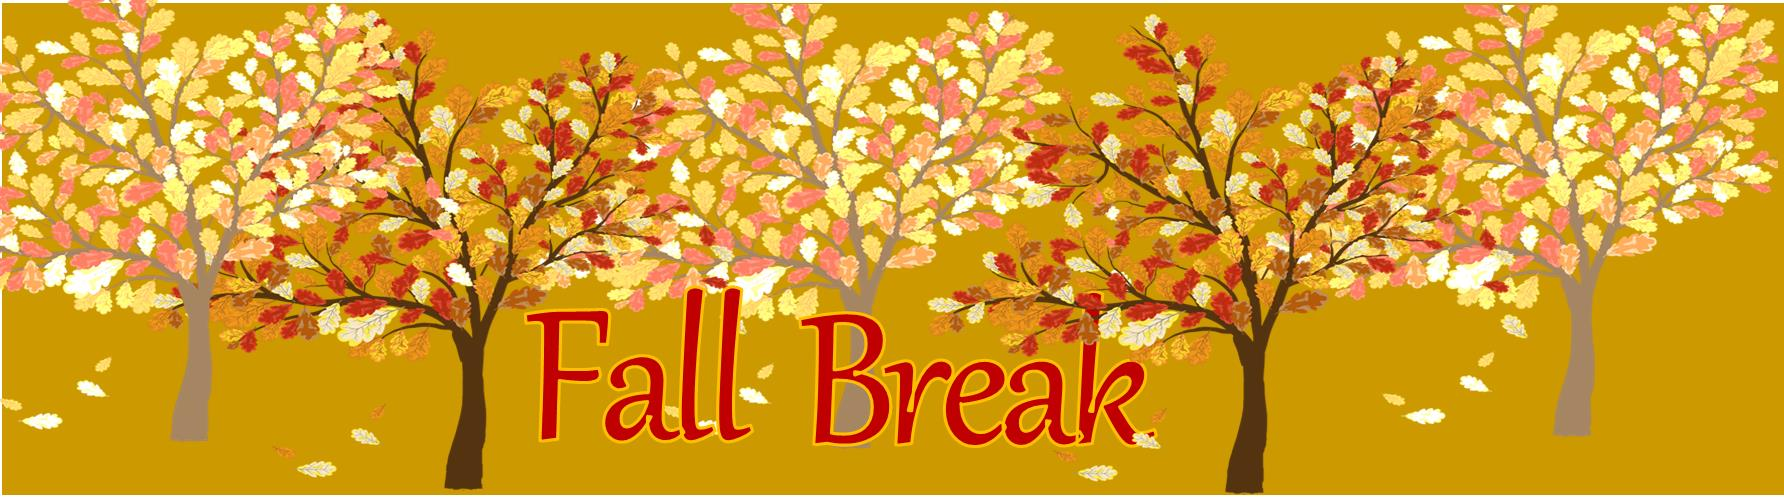 Fall Leaves Clip Art Wallpaper Free Autumn School Cliparts Download Free Clip Art Free